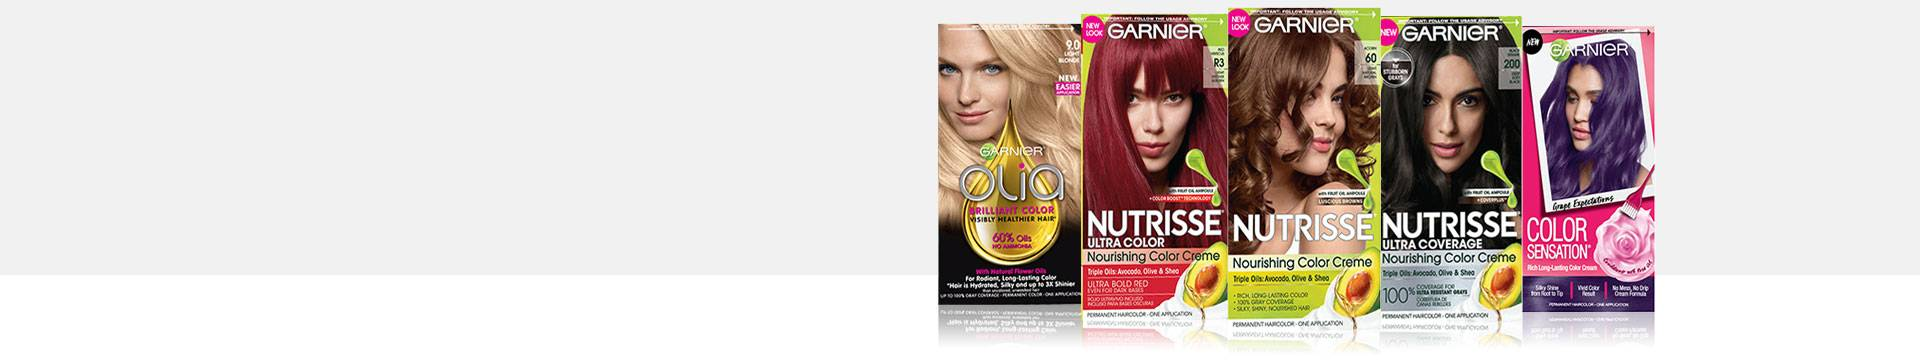 About Our Brands Permanent Temporary Hair Color Garnier